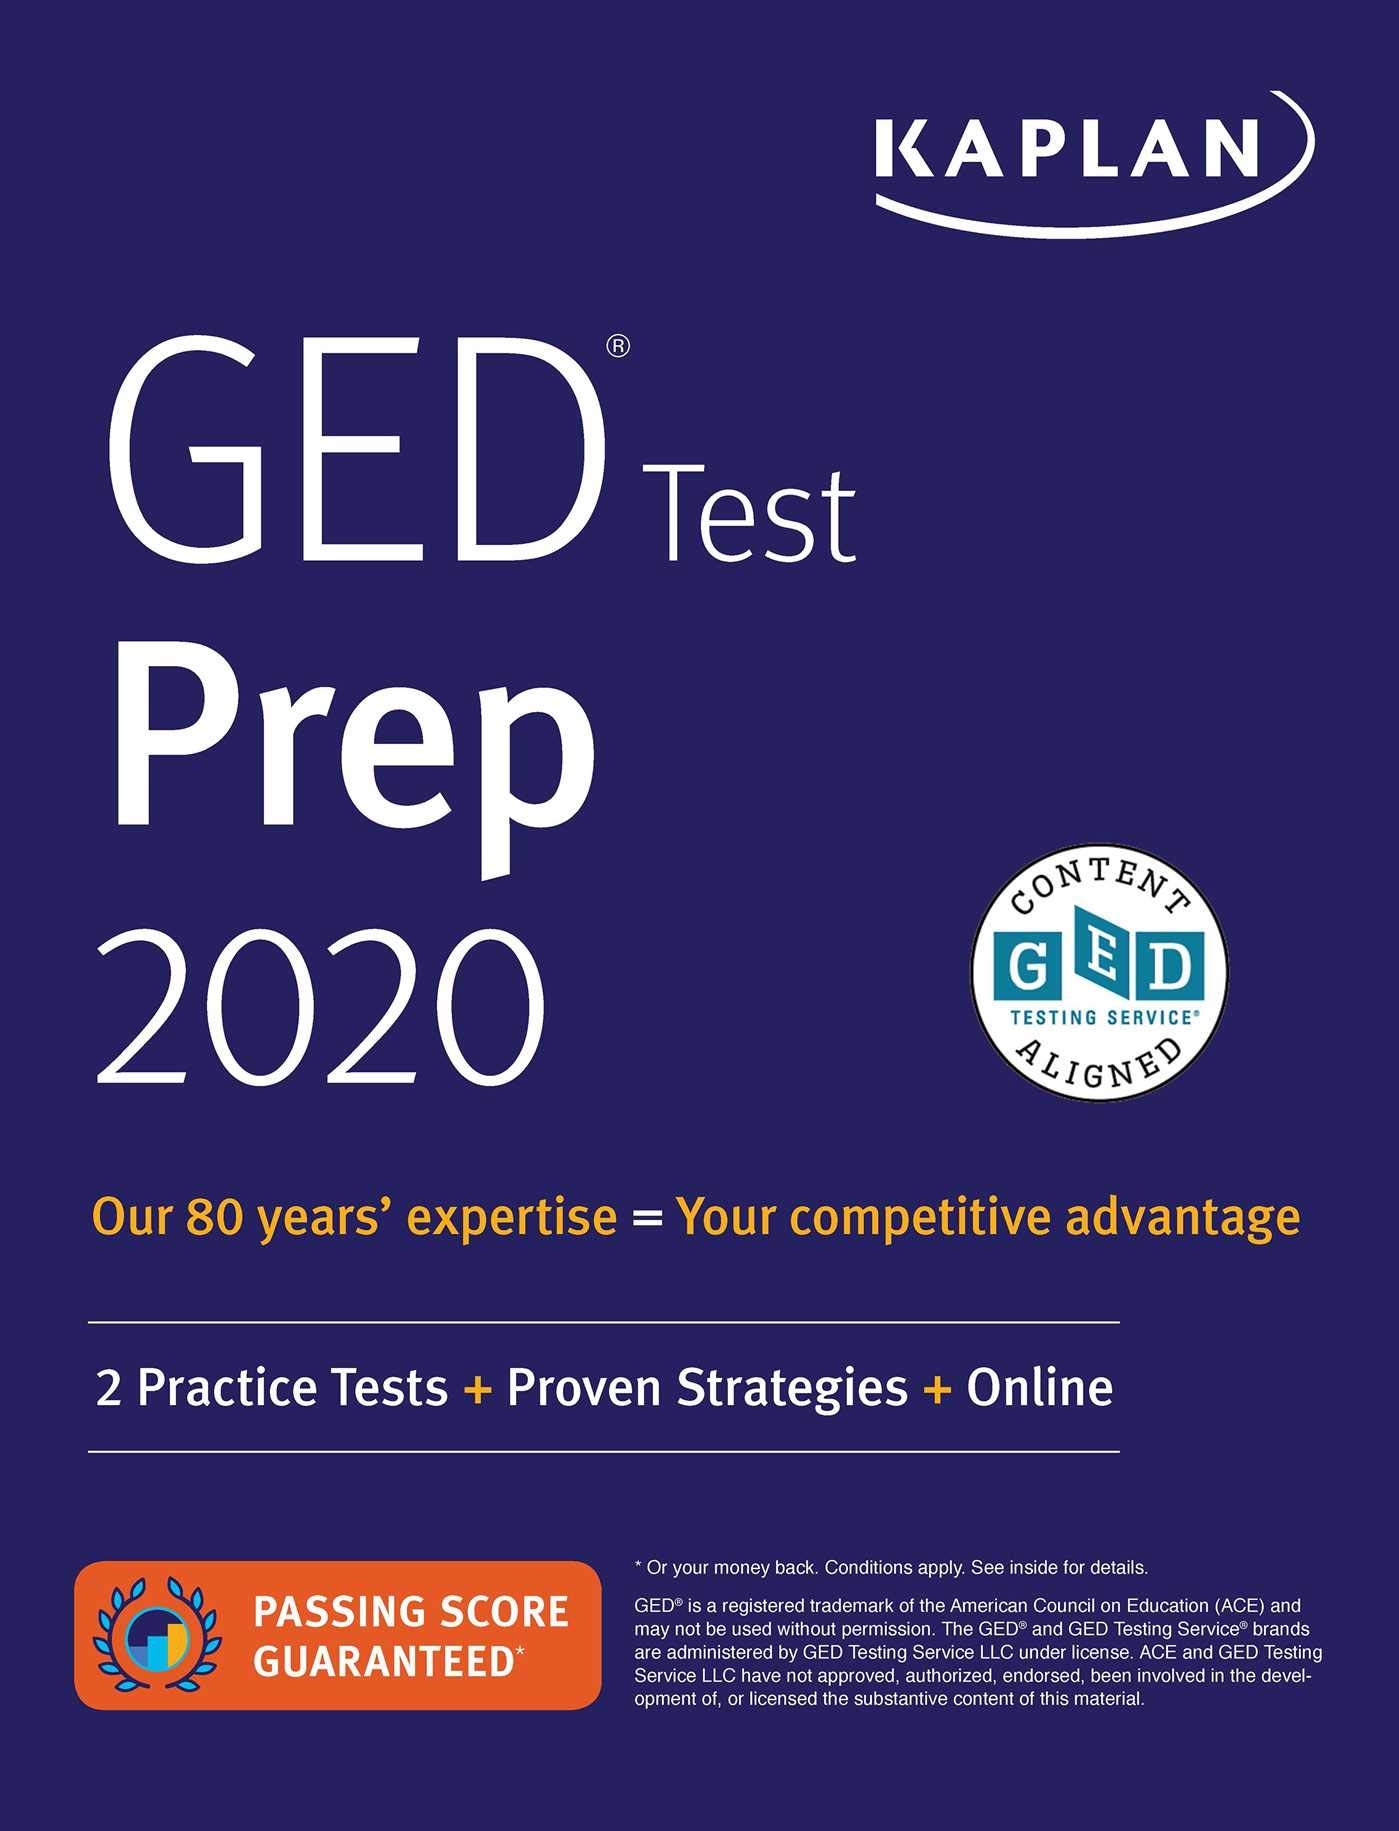 Download GED Test Prep 2020: 2 Practice Tests + Proven Strategies + Online (Kaplan Test Prep) 